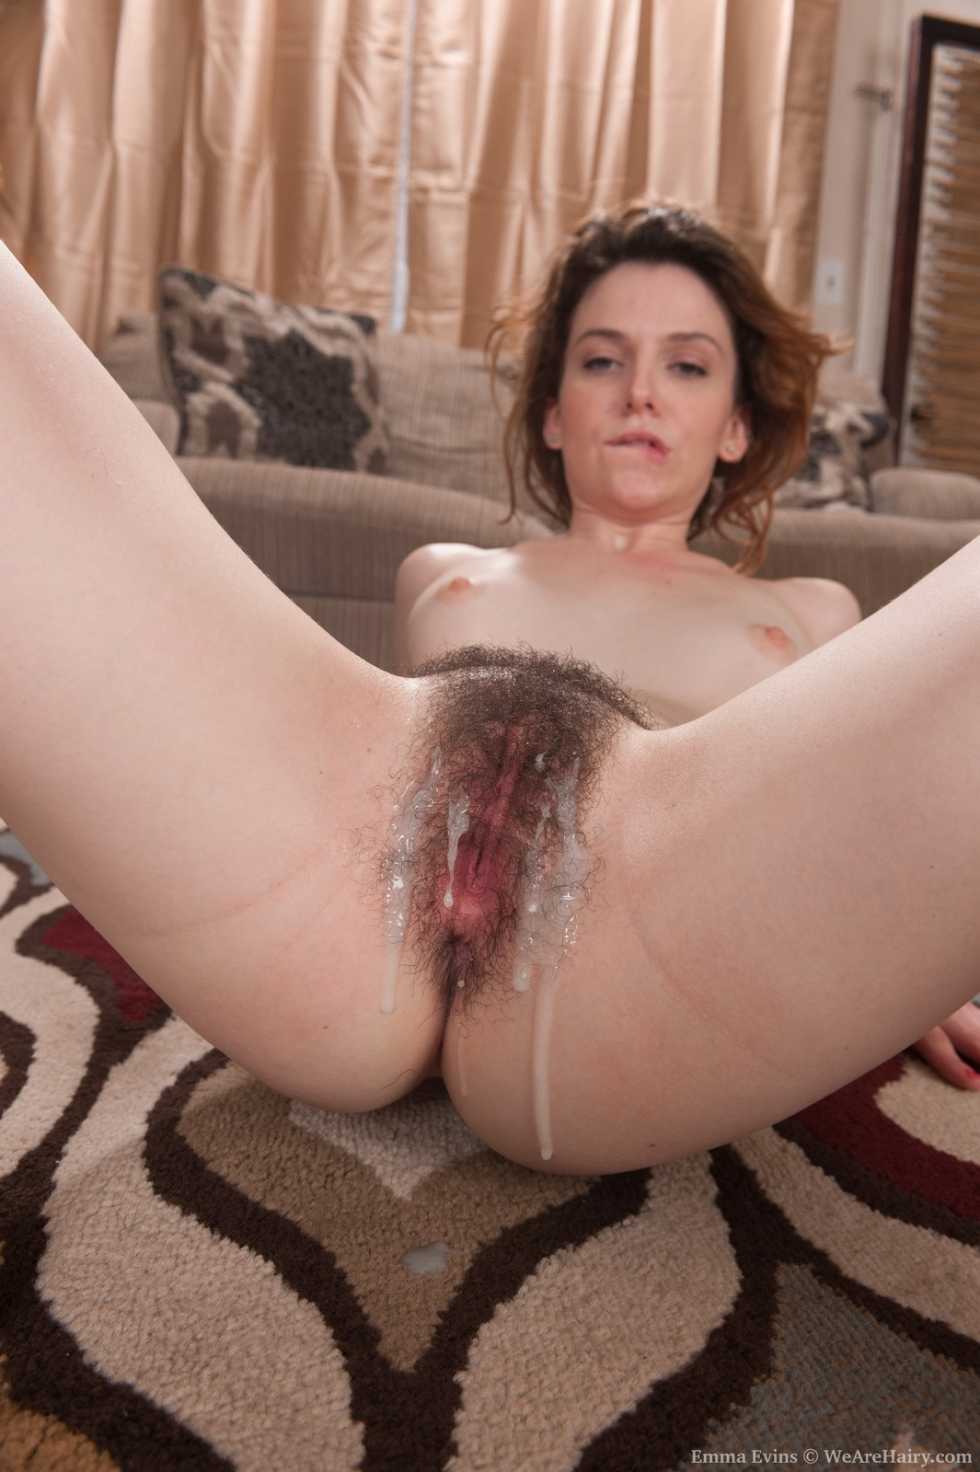 image Date with emma evins leads to a creampie and vacation